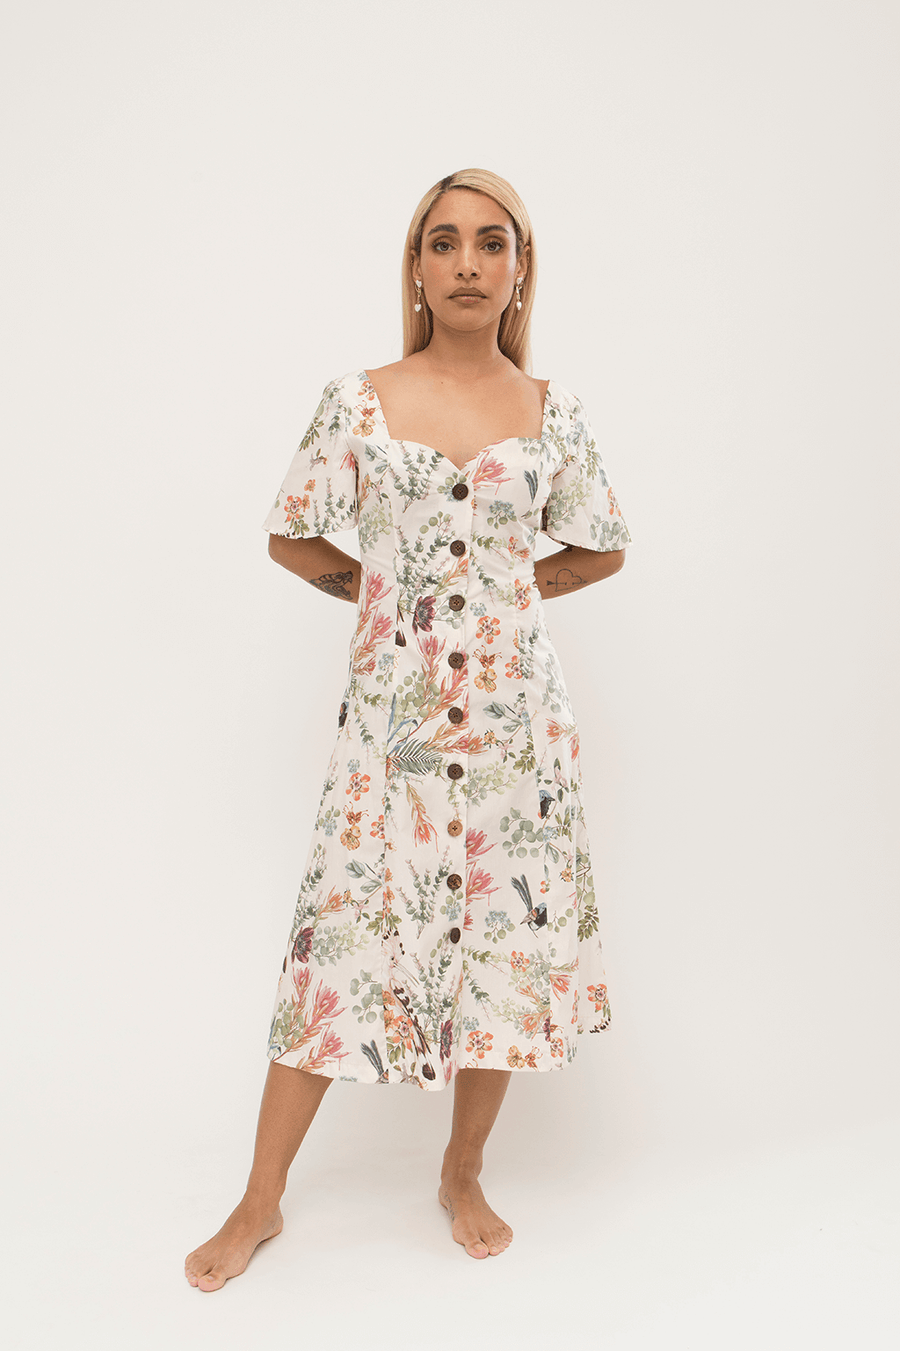 Sunday Dress in Cream Floral